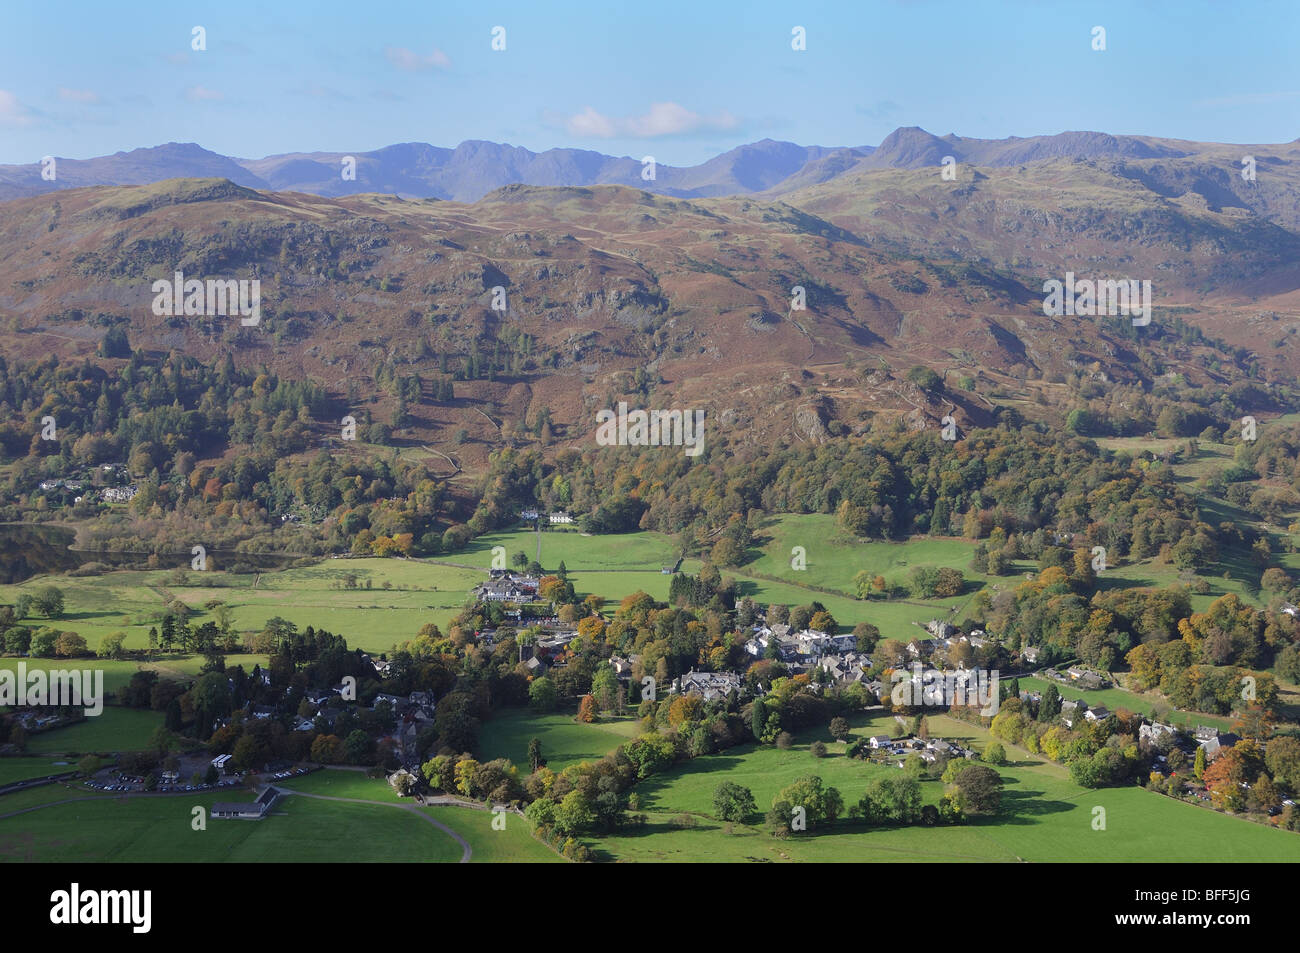 The little village of Grasmere sits in the valley below the slopes of Silver How in the English Lake District - Stock Image